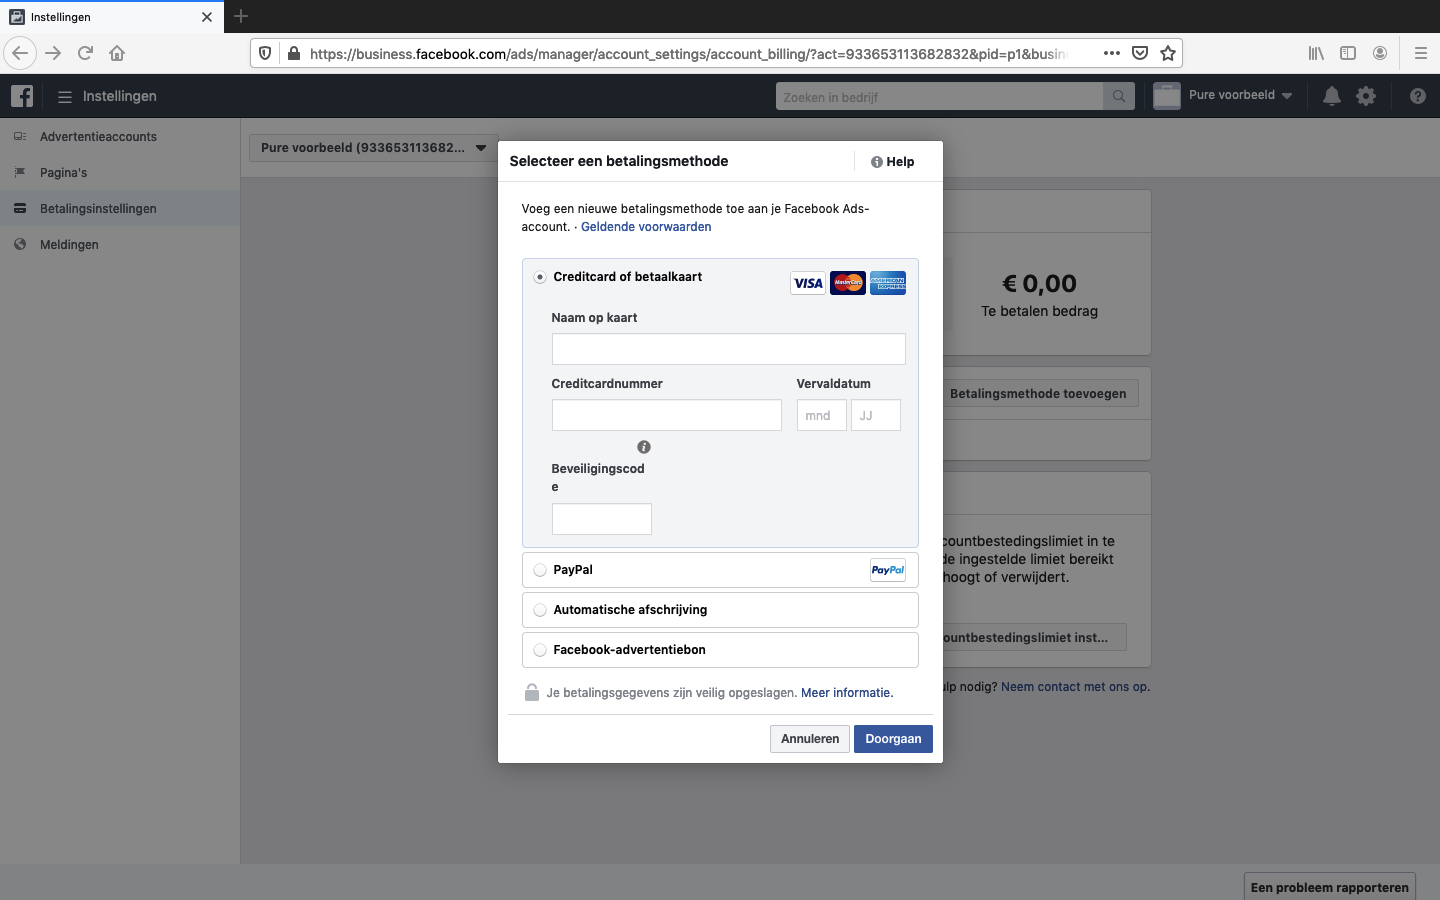 facebook advertentieaccount aanmaken stap 8